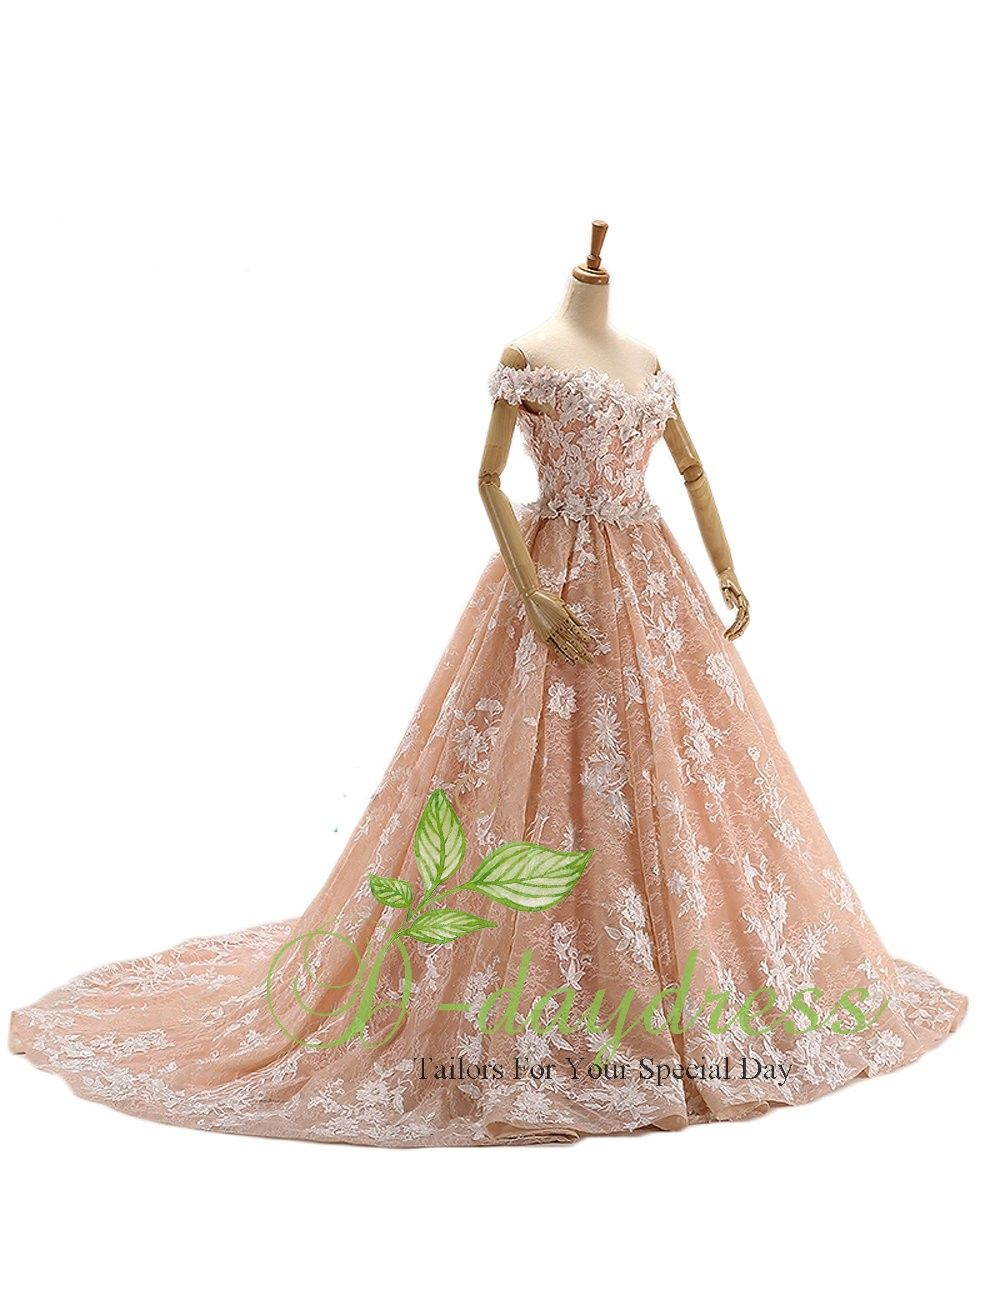 Orange pink ball gown long sweetheart appliqued floral lace bridal